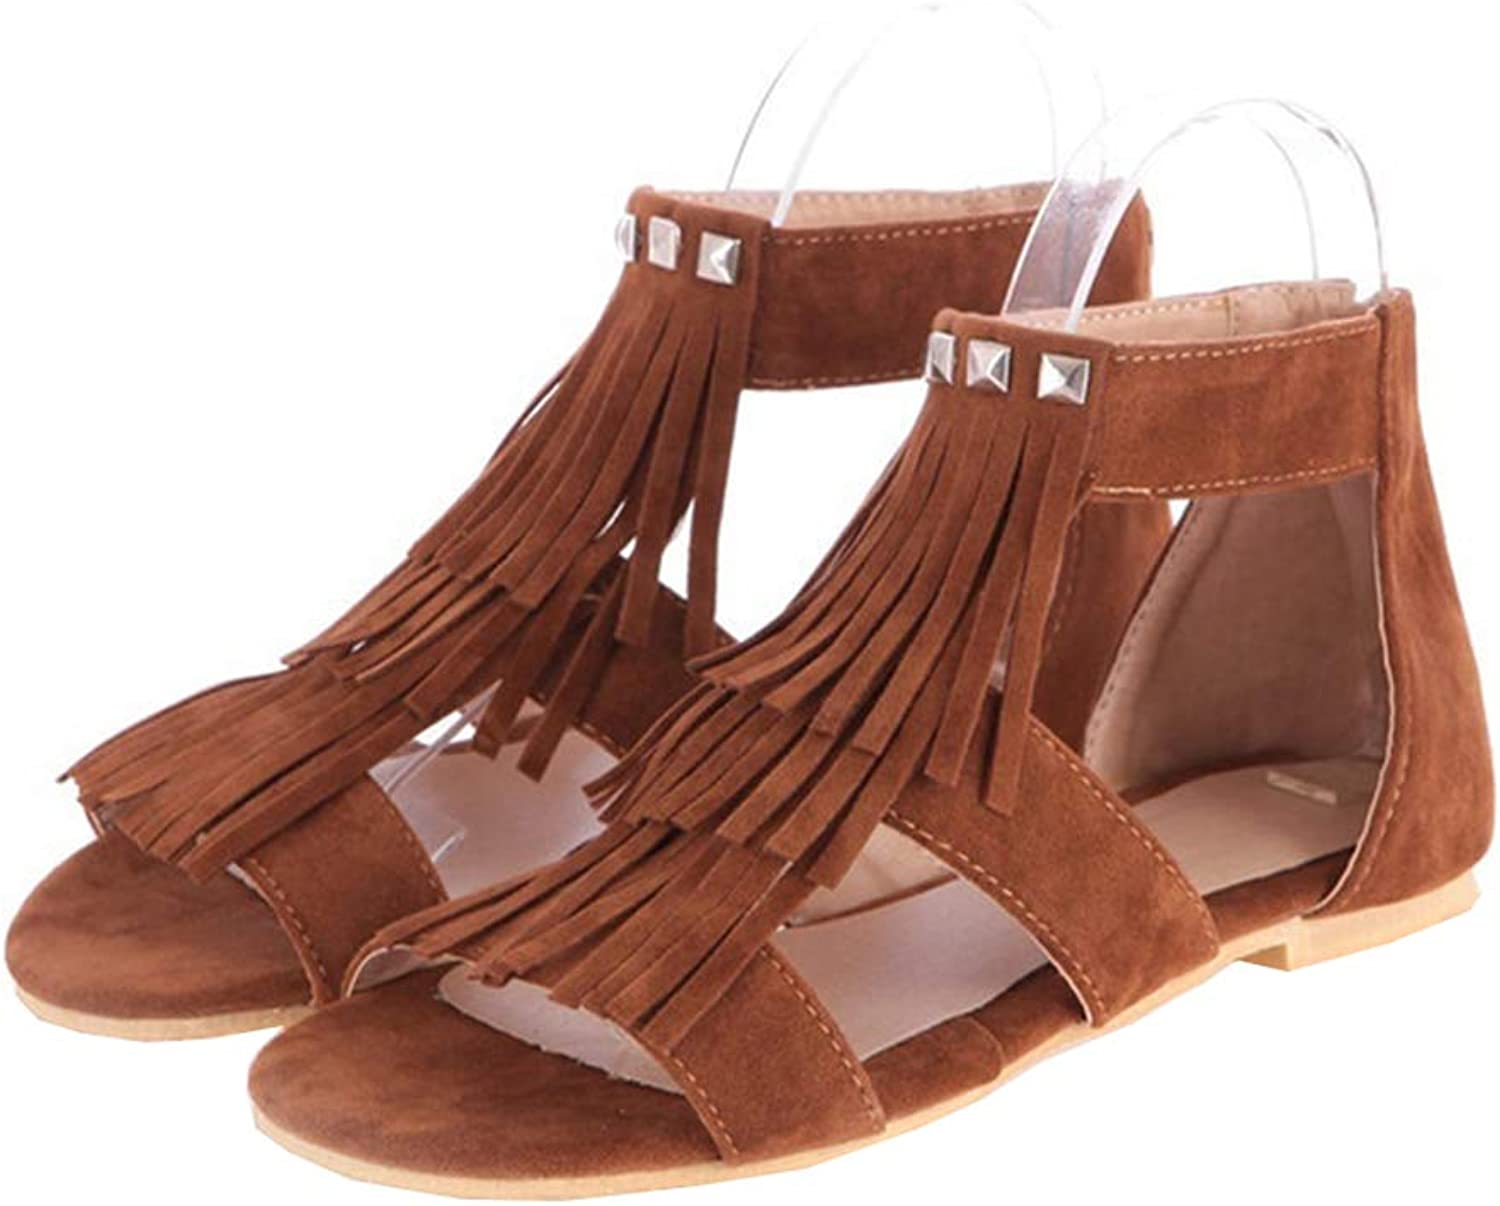 HEDDK Summer Women Roman Casual Sandals Rivets Flat Fringed Sandals Ladies Zipper Peep Toe Sandals Big Size 34-42